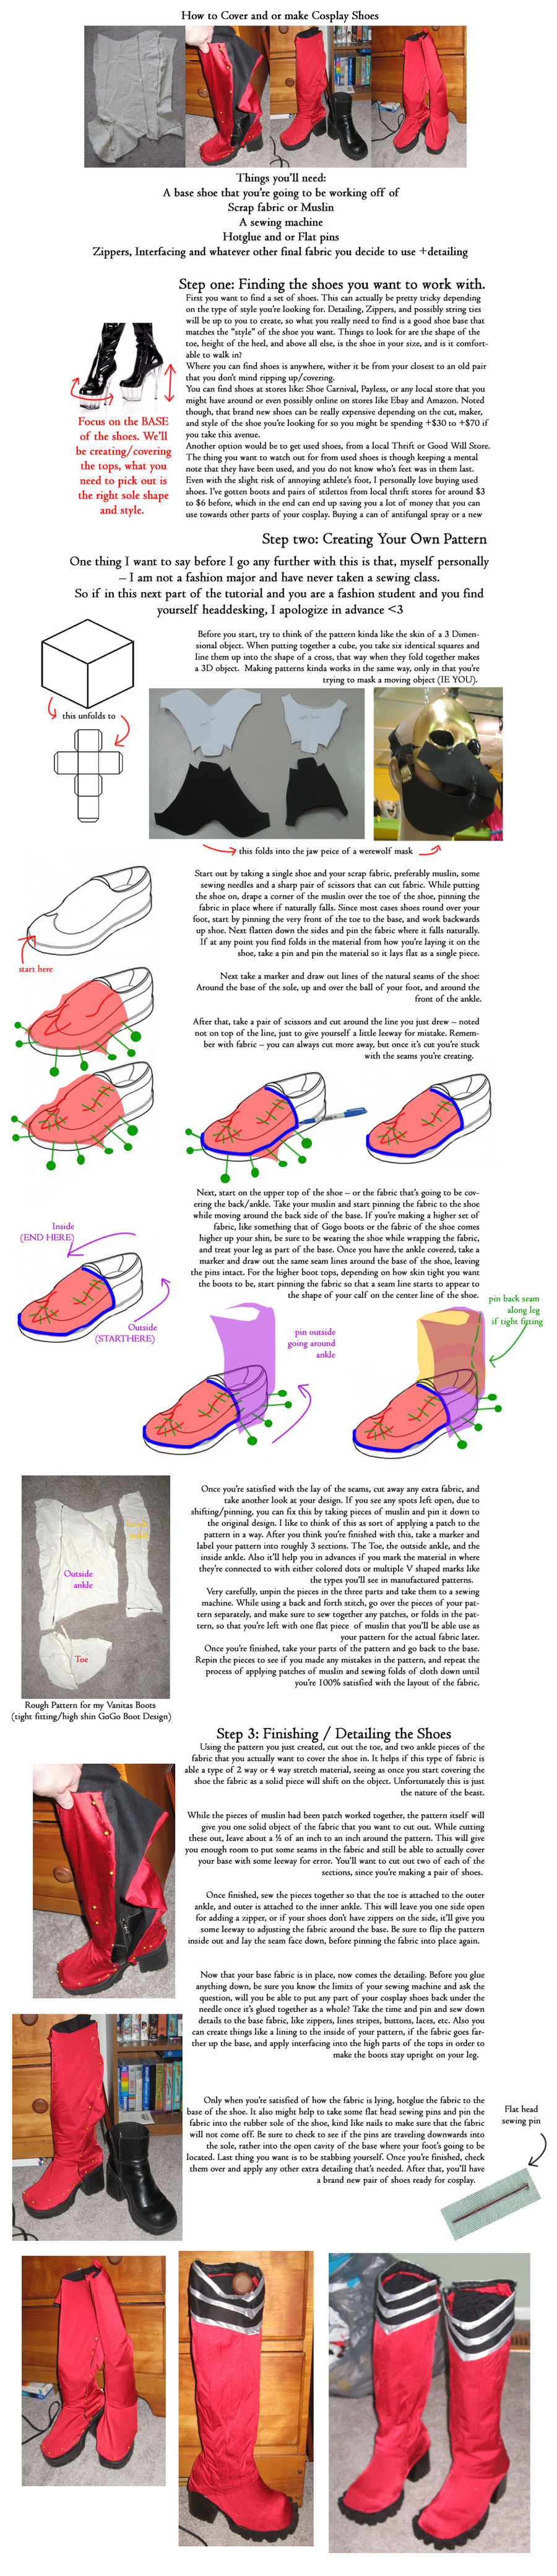 How To Cover Cosplay Shoes by NSCosplay